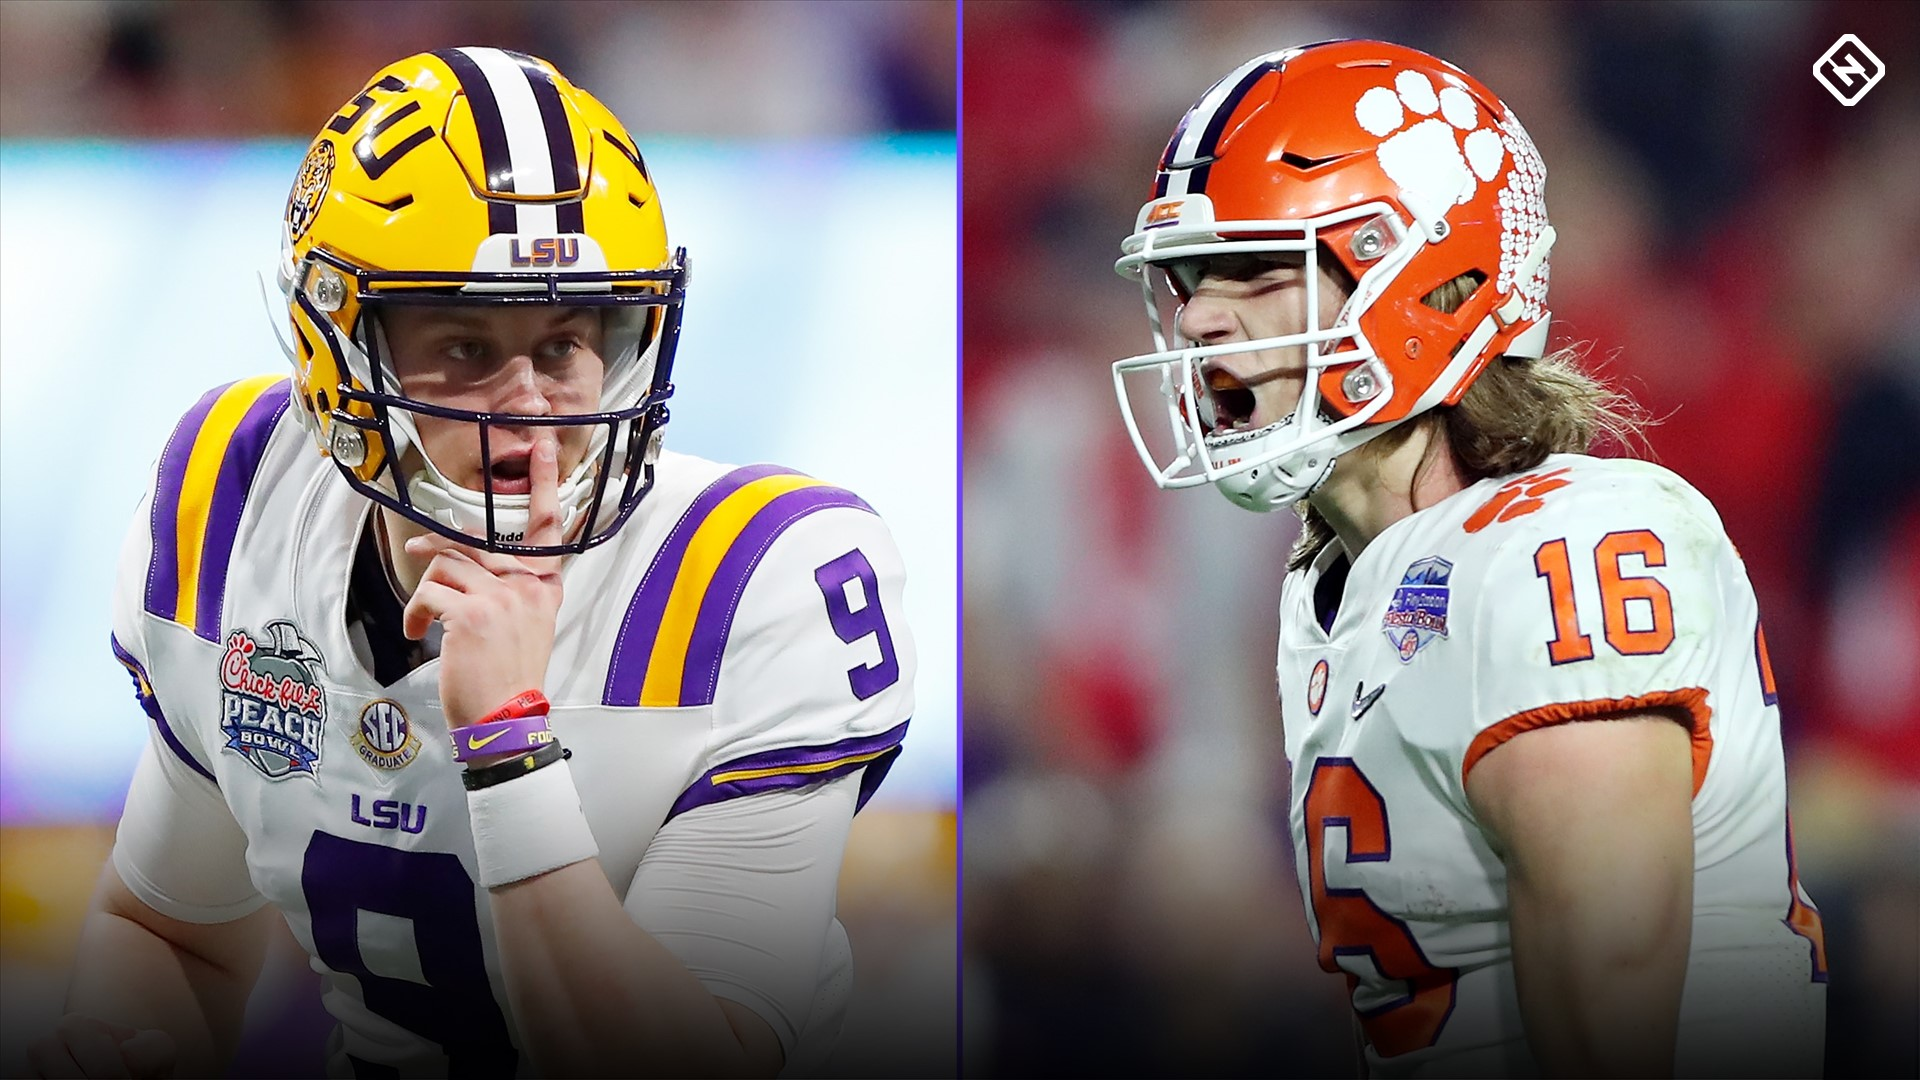 Lsu Vs Clemson Five Storylines That Will Define College